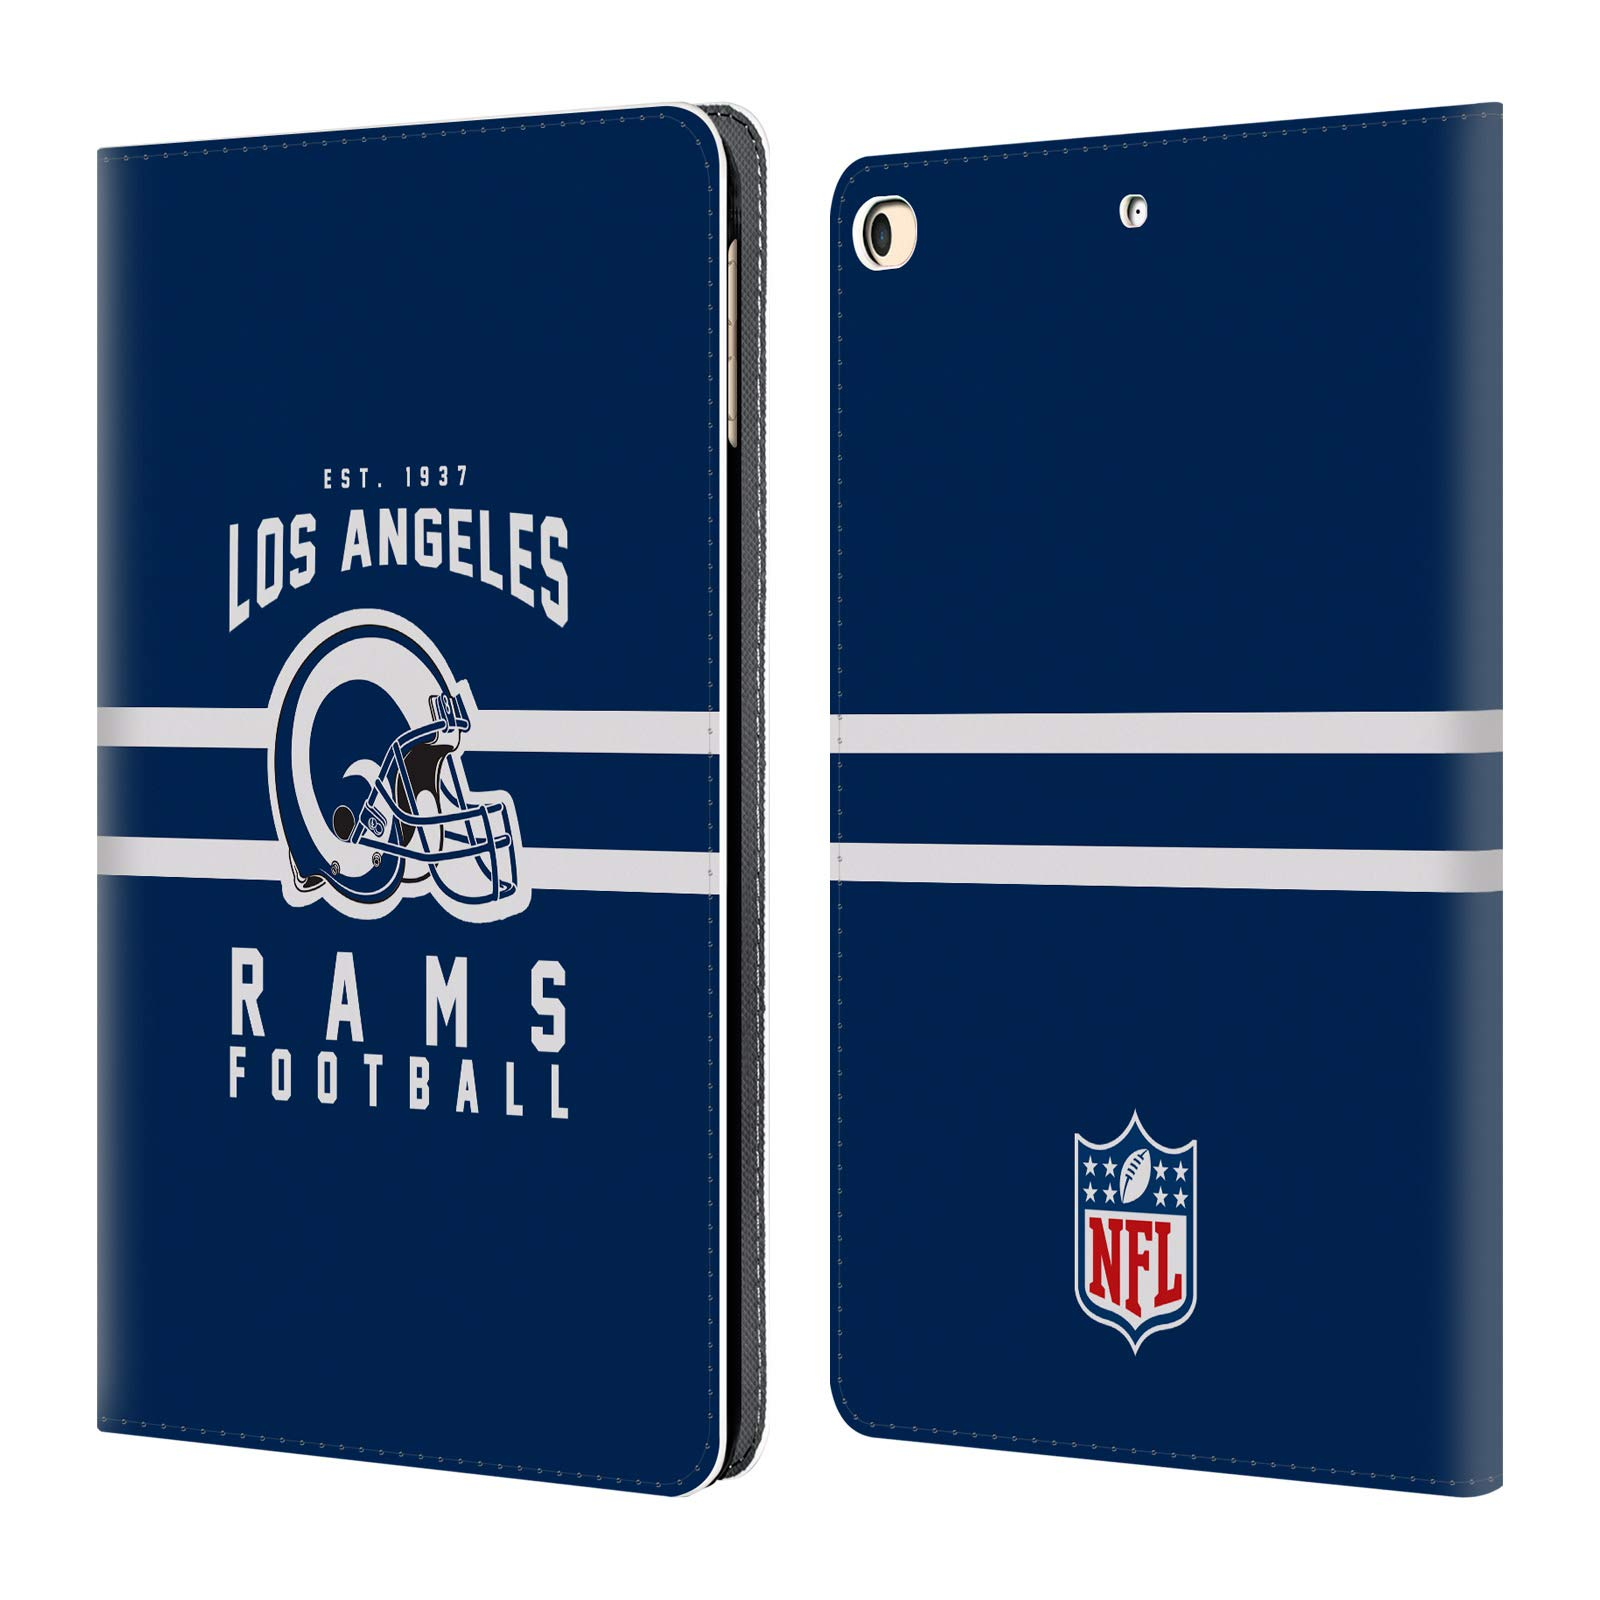 Official NFL Helmet Typography 2018/19 Los Angeles Rams Leather Book Wallet Case Cover for iPad 9.7 2017 / iPad 9.7 2018